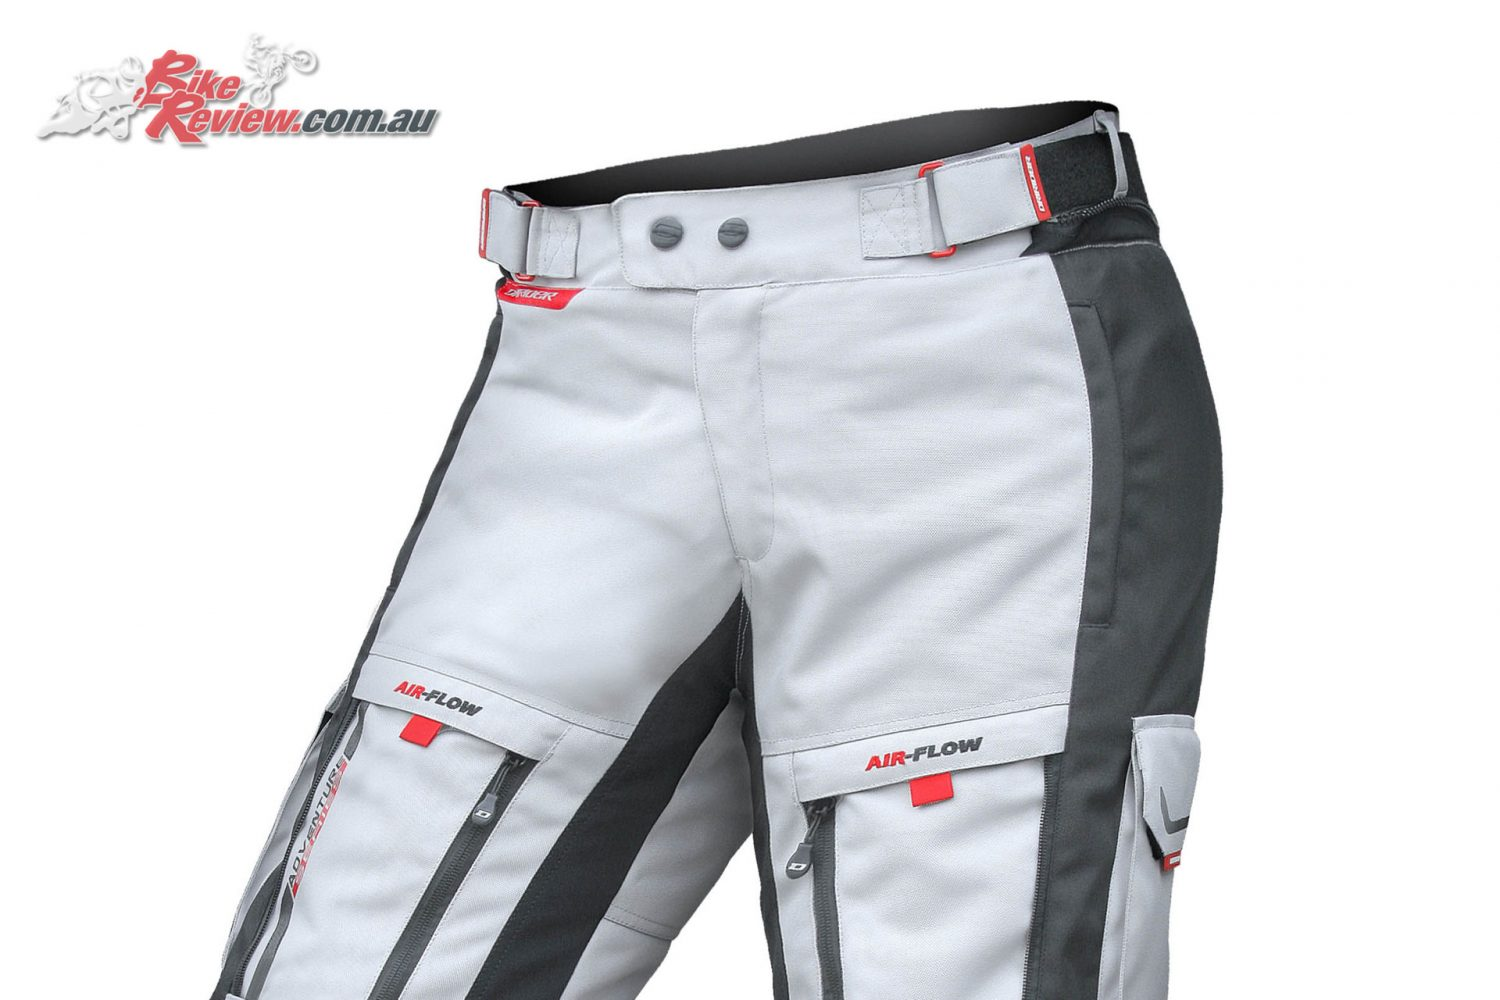 DriRider Vortex Adventure 2 Pant